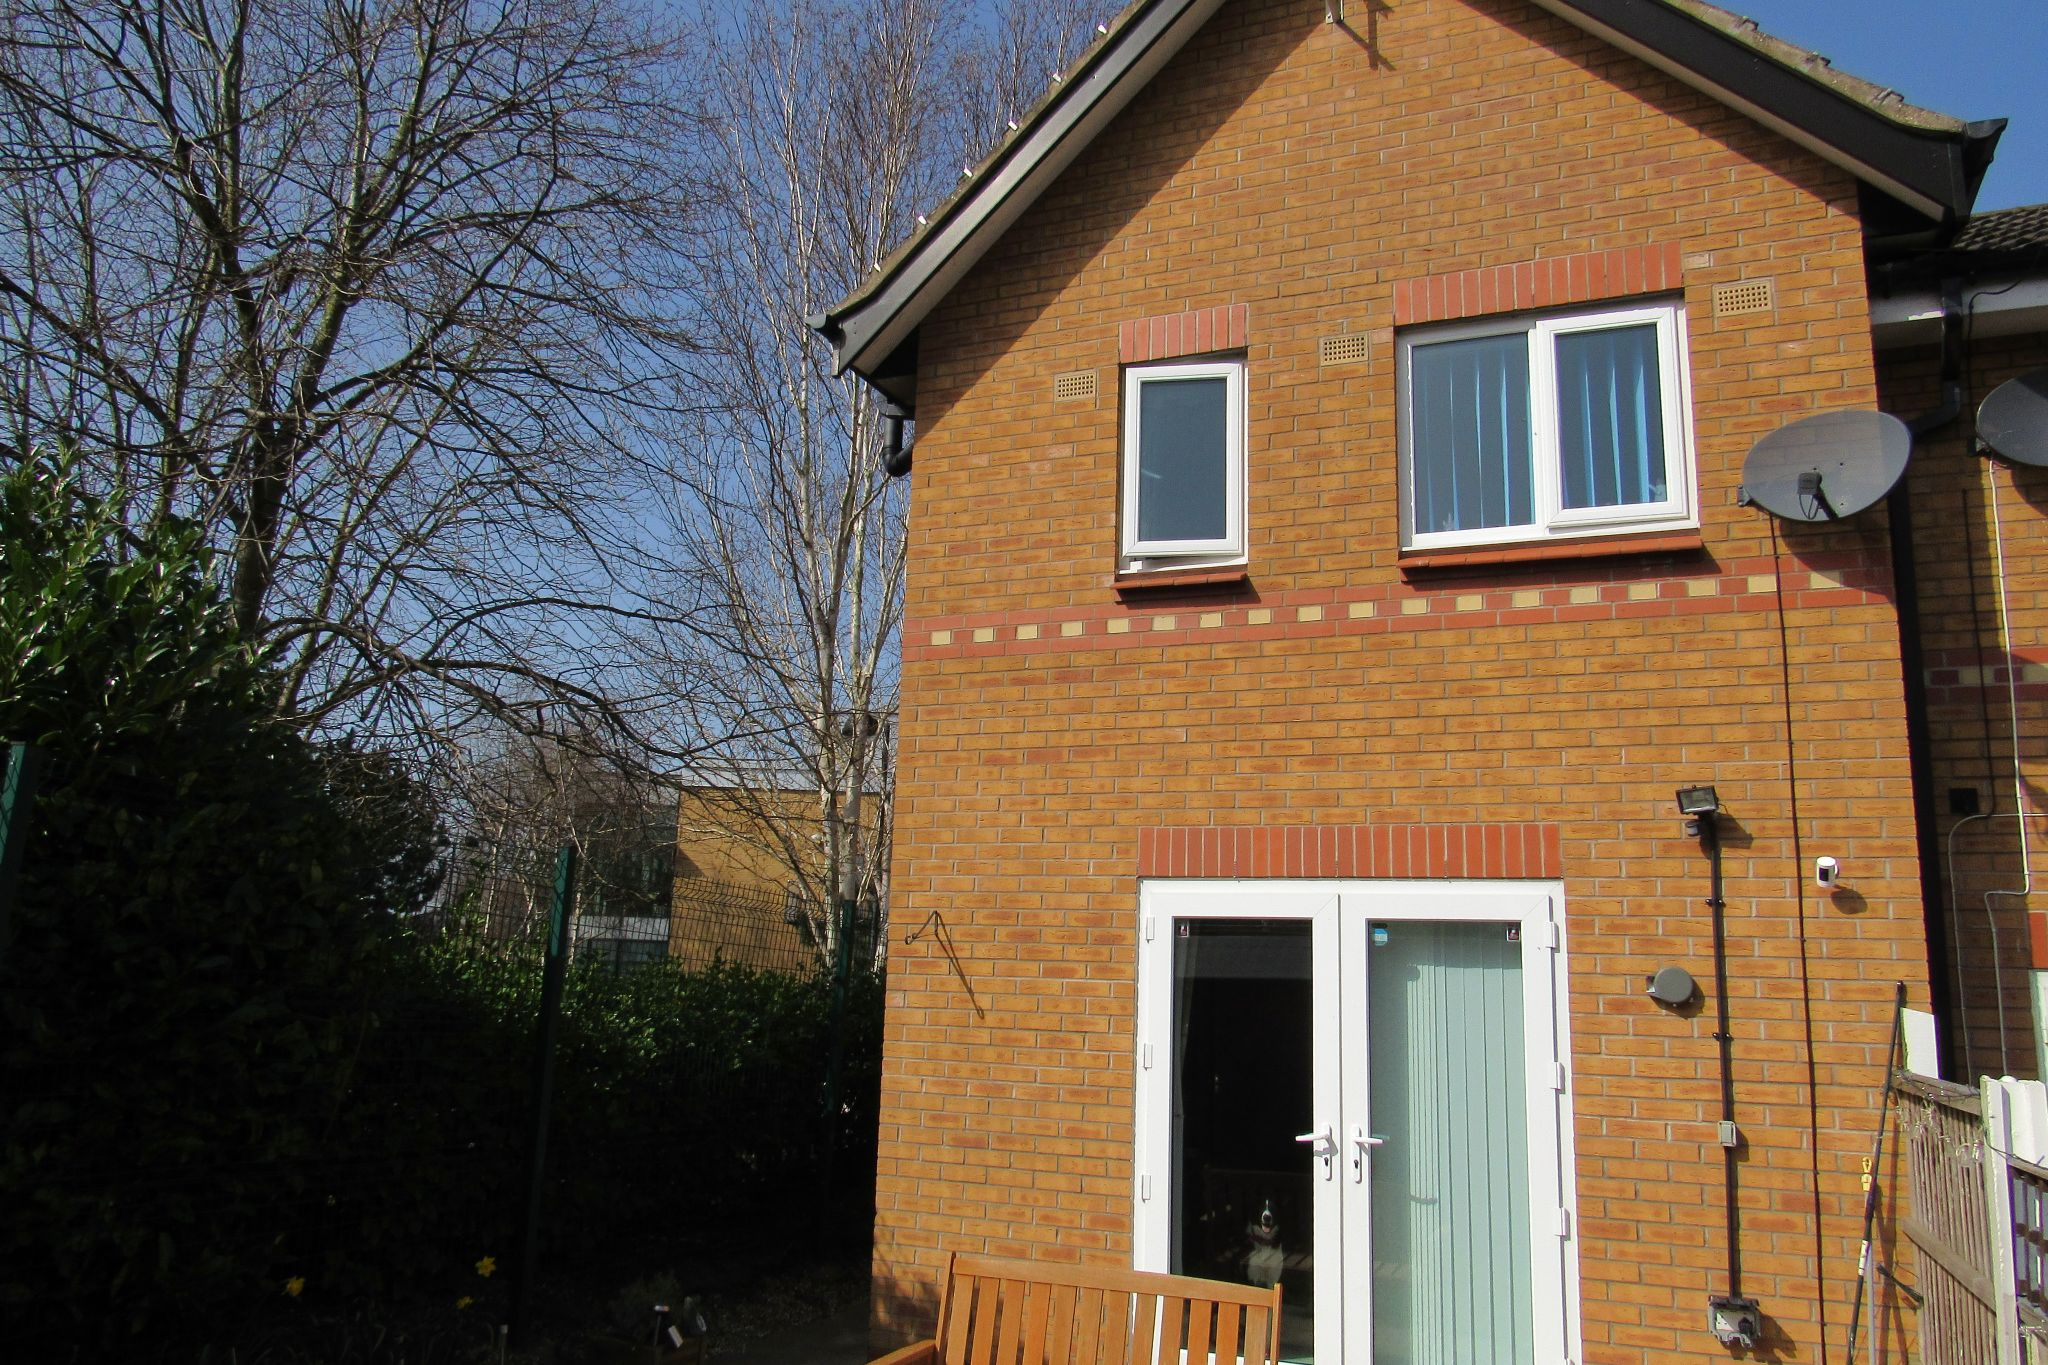 2 bedroom semi-detached house SSTC in Manchester - Photograph 17.